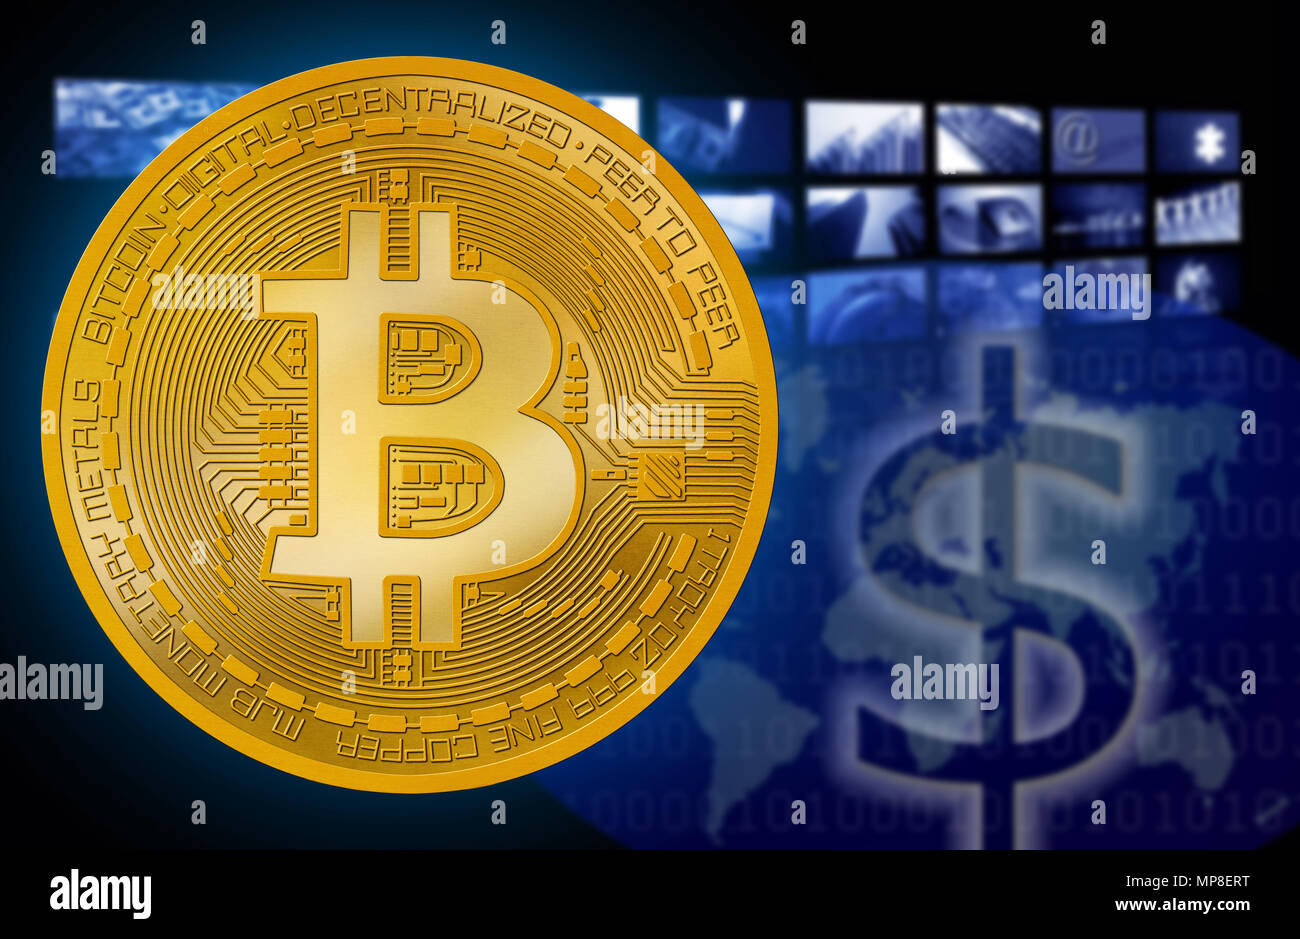 Bitcoin Btc Against Dollar Usd Symbol Cryptocurrency Background Of